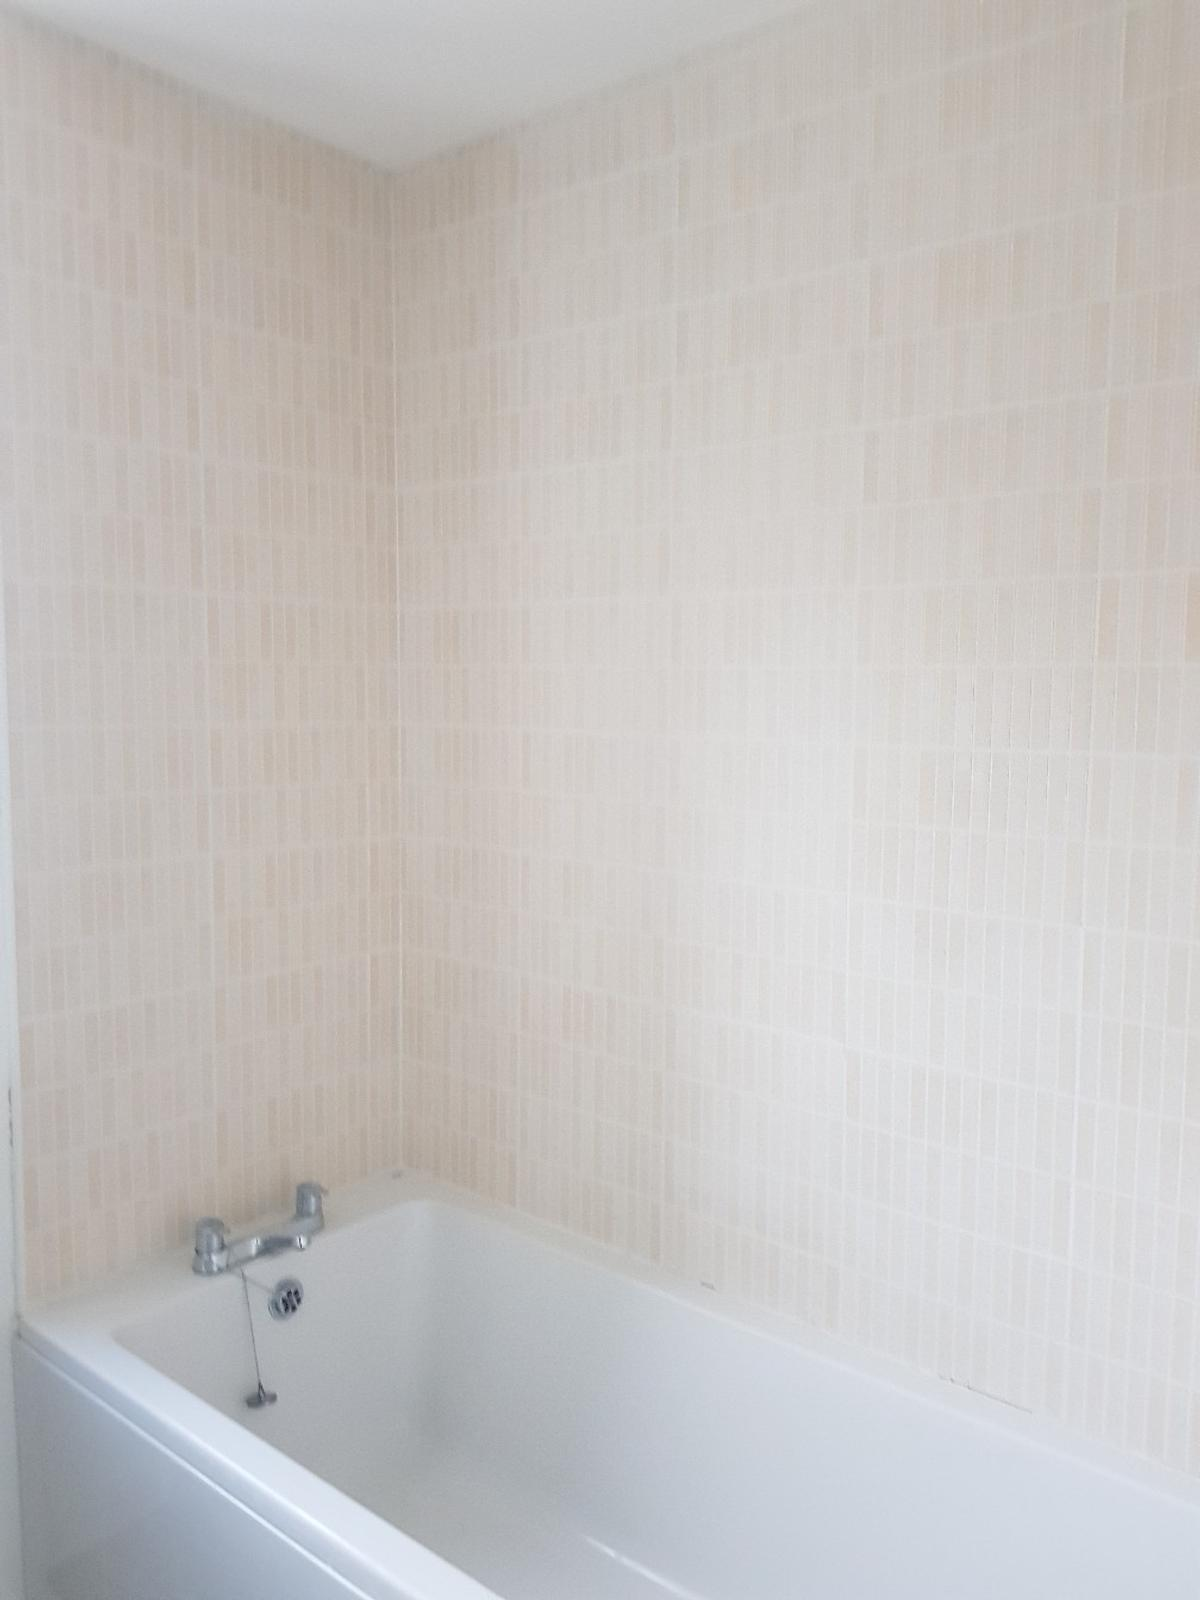 Awesome Bathroom Tiles In Wakefield For 30 00 For Sale Shpock Download Free Architecture Designs Fluibritishbridgeorg